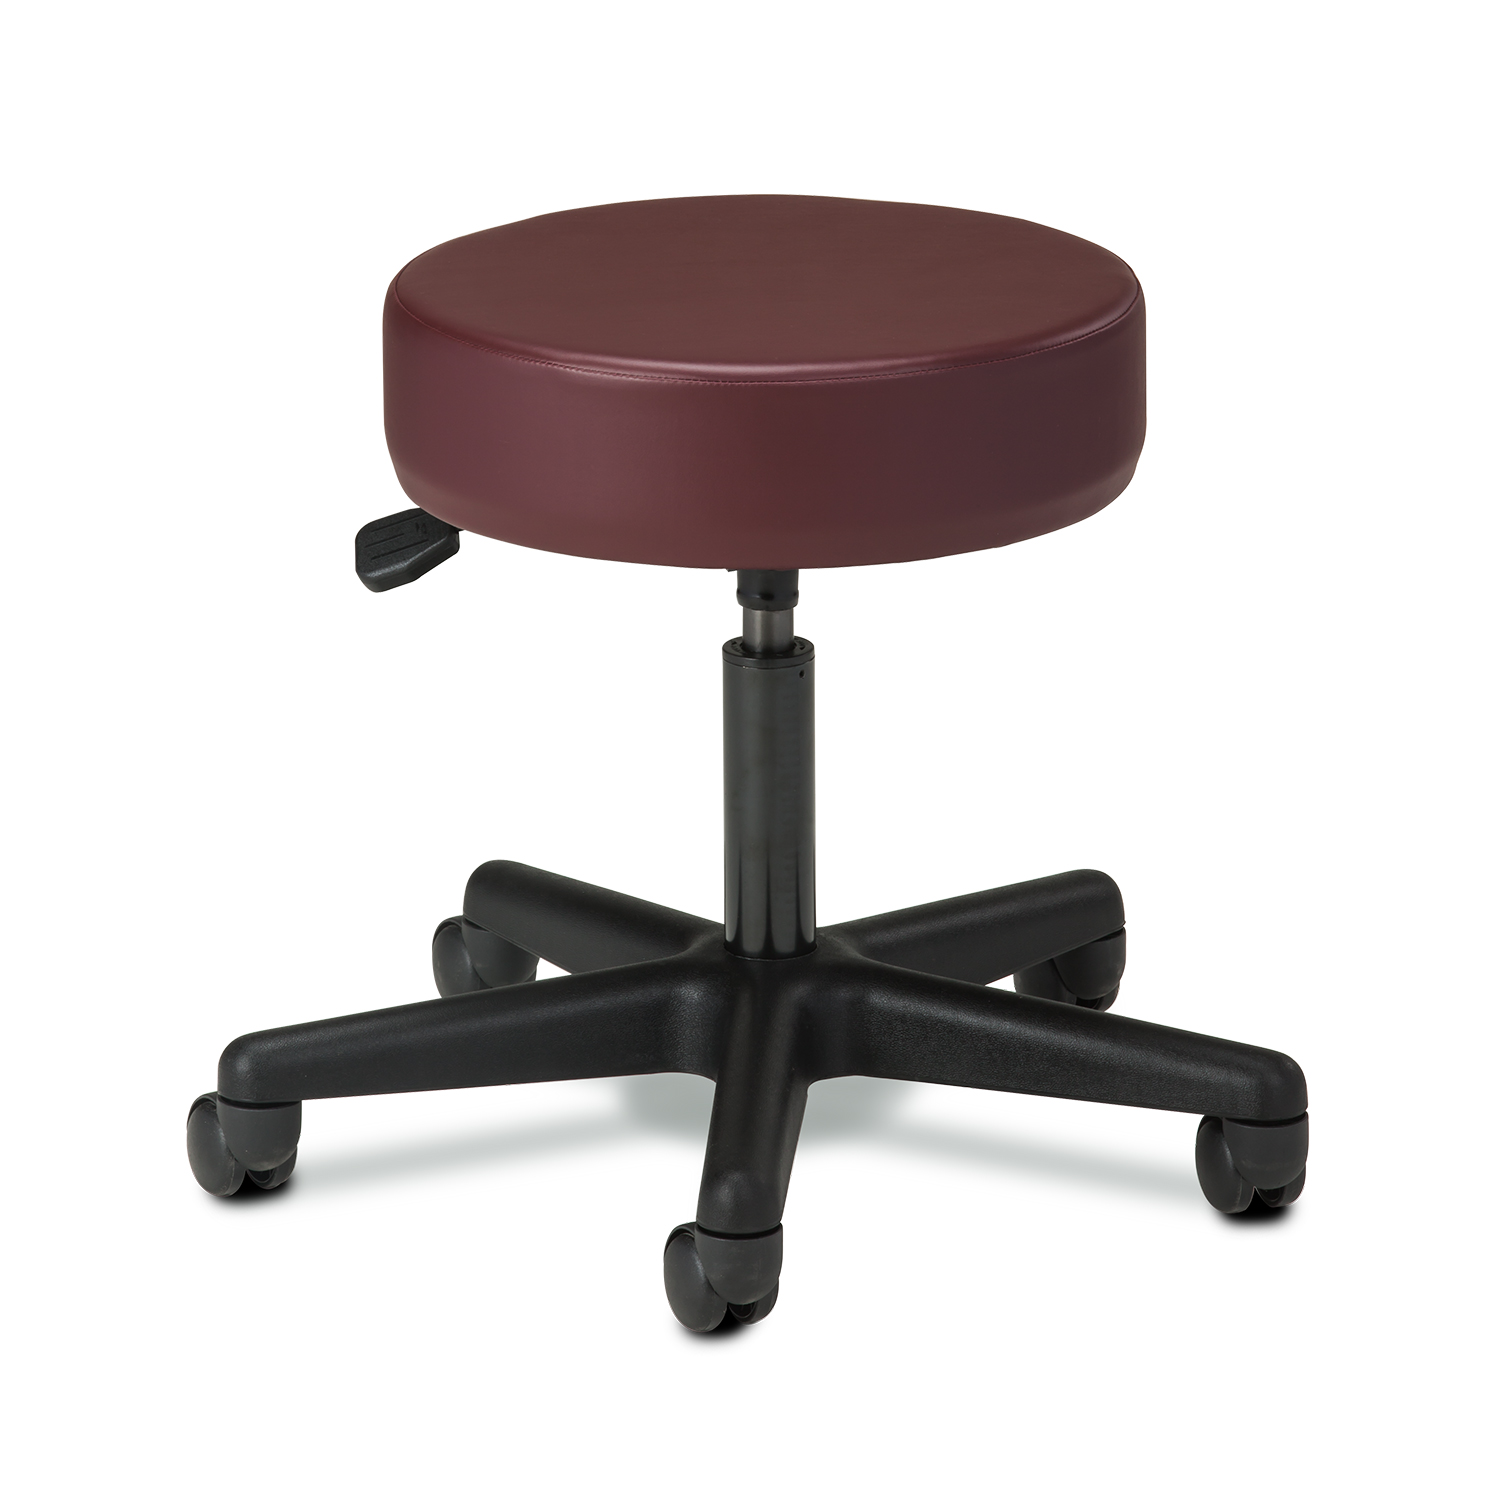 Clinton 5-Leg Nylon Base Pneumatic Stool